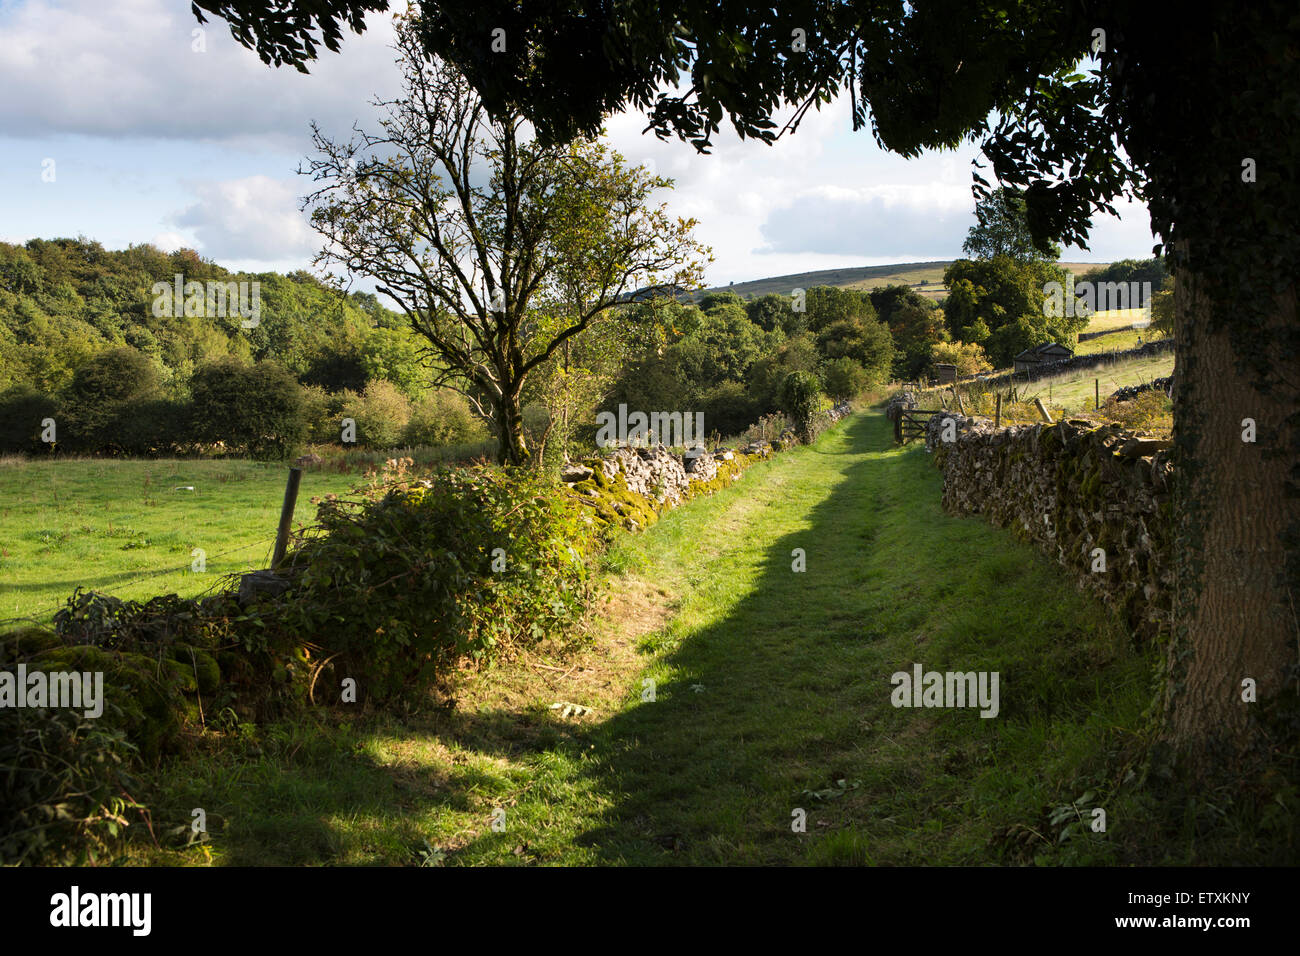 UK, England, Derbyshire, Eyam, old green lane to Cucklet Delf used for plague period services - Stock Image